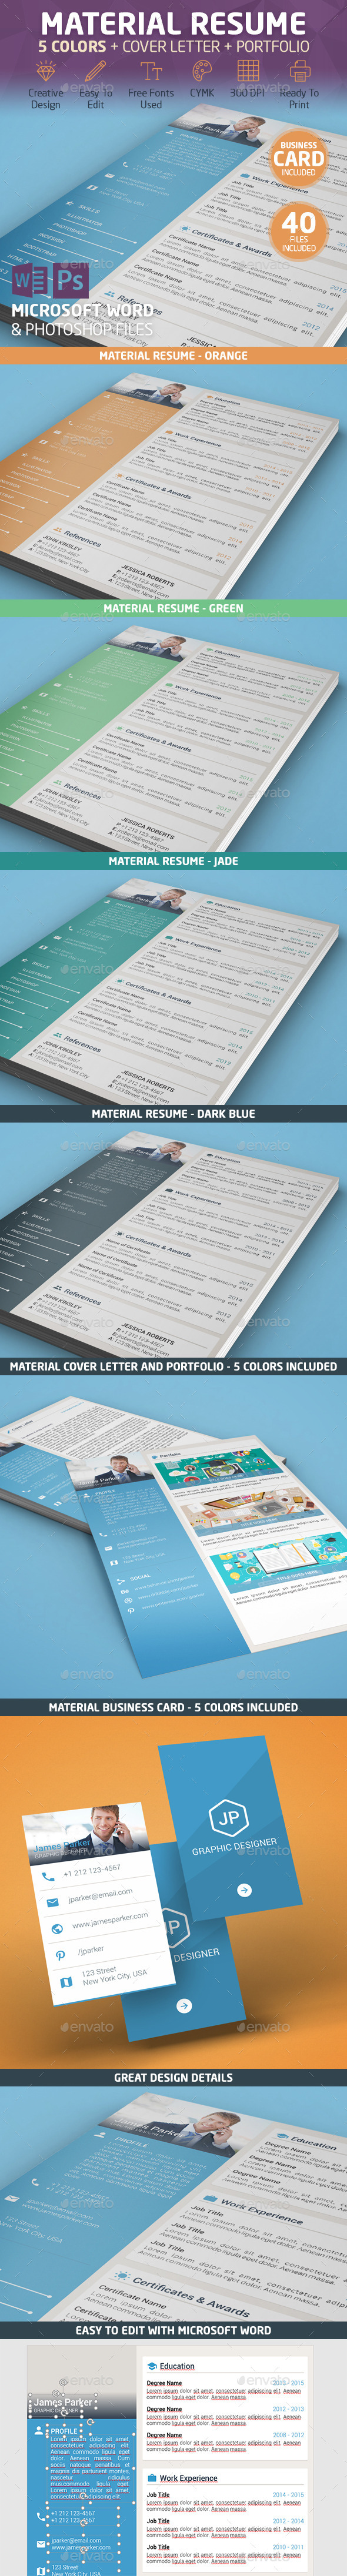 Material Resume - Resumes Stationery